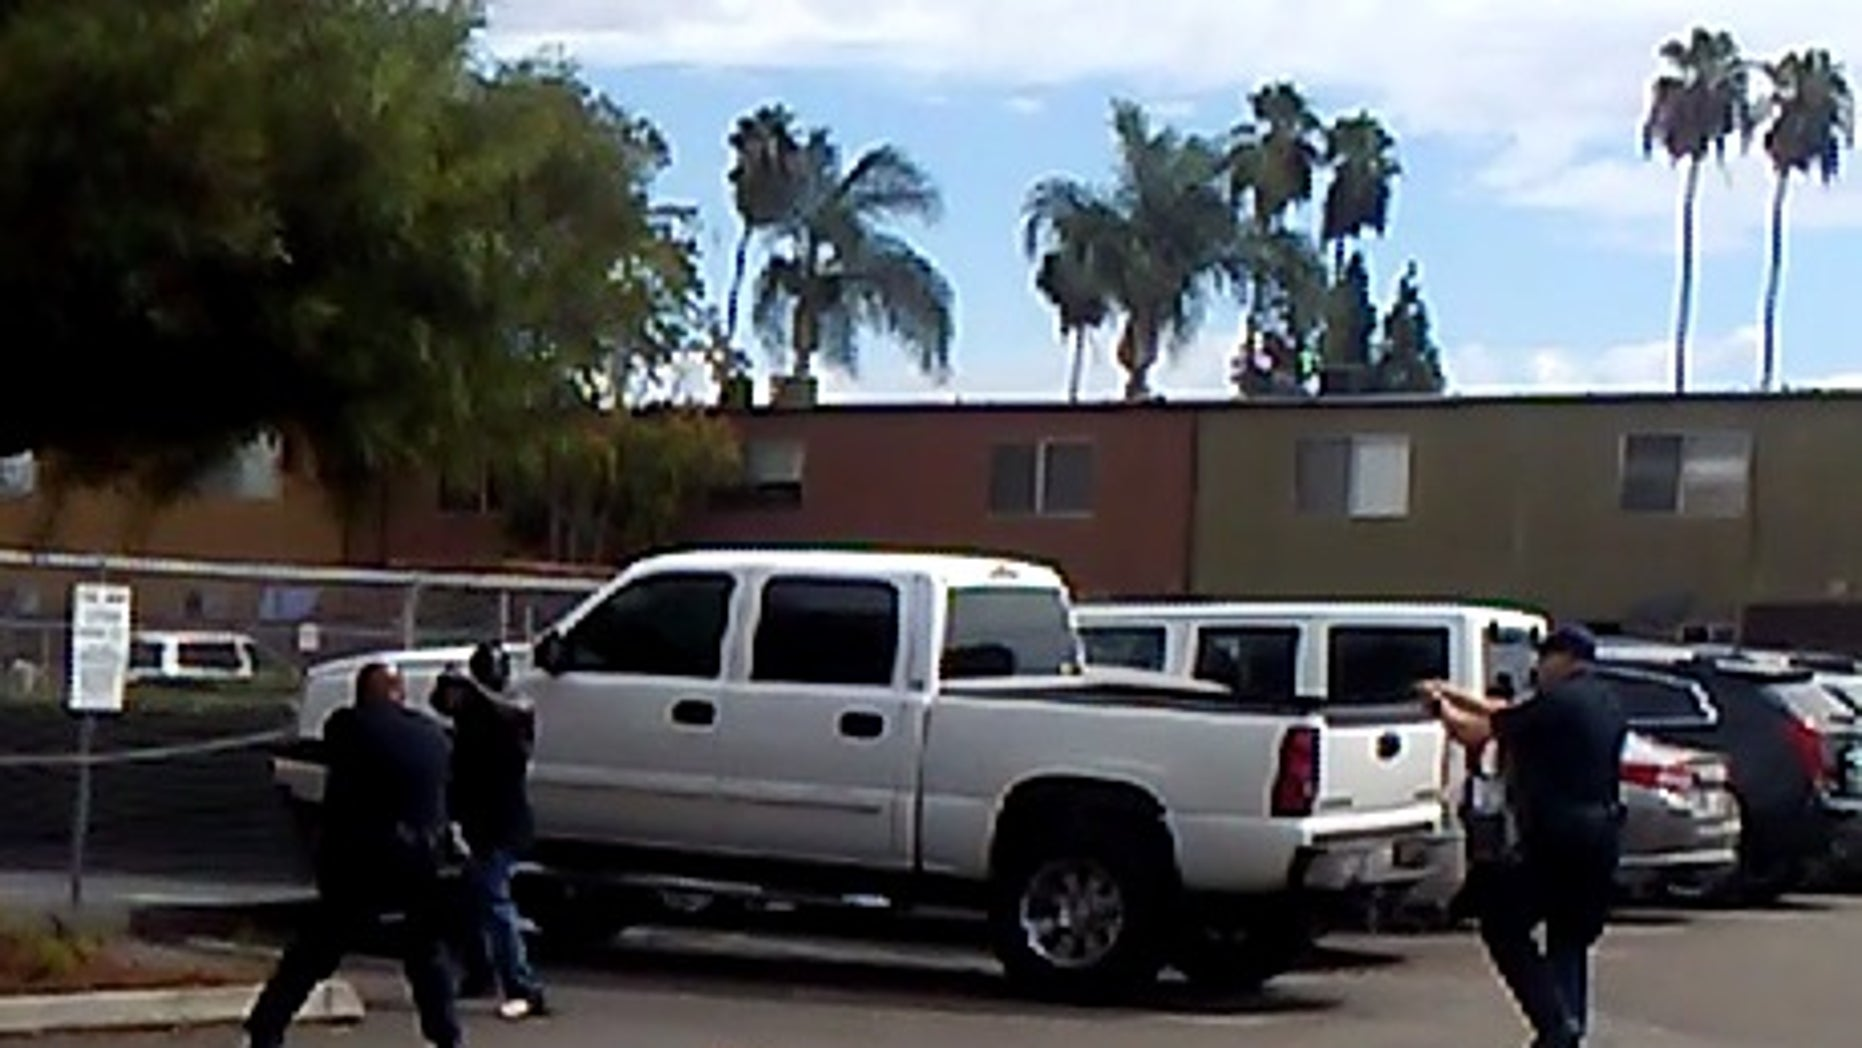 Police released this image showing officers confronting the man.